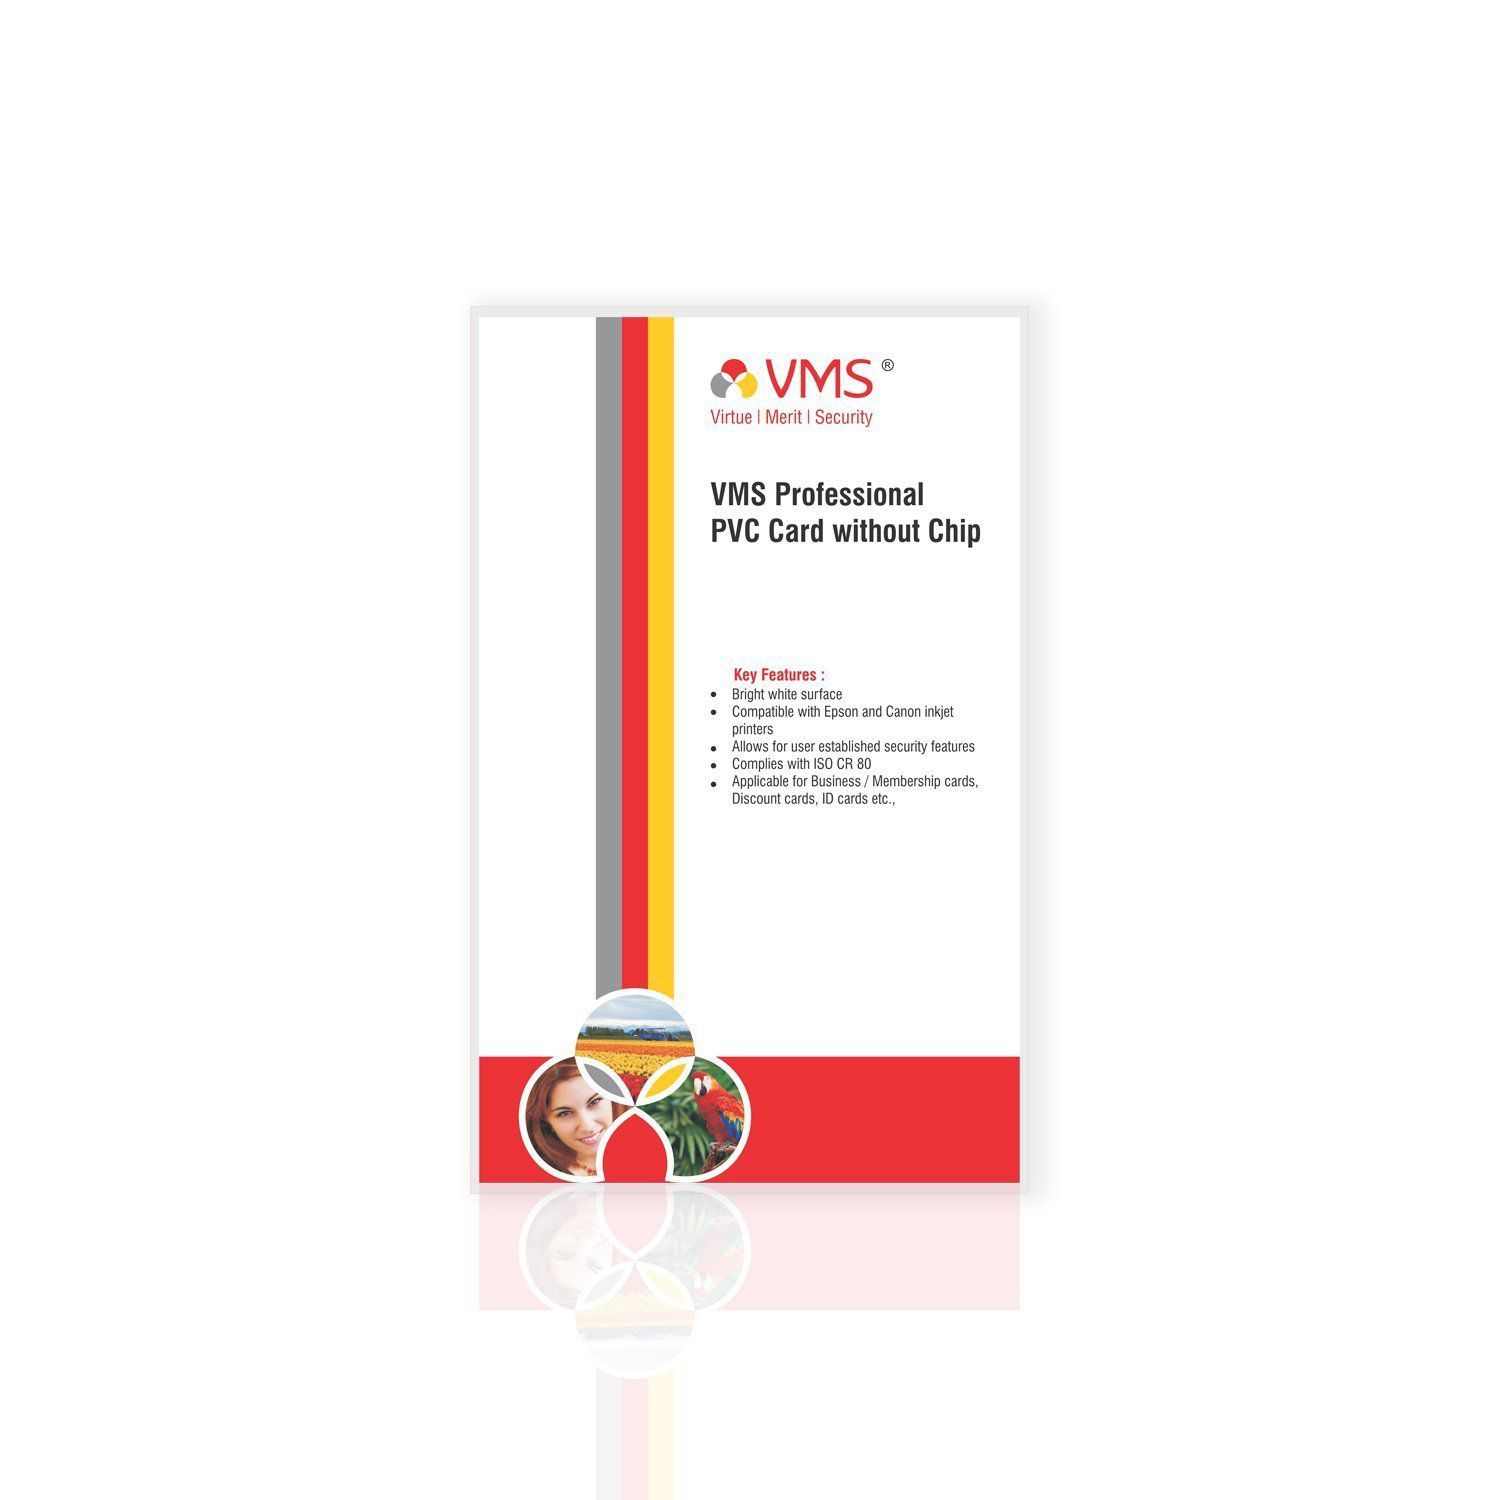 vms professional pvc card without chip for inkjet printers contact rh snapdeal com